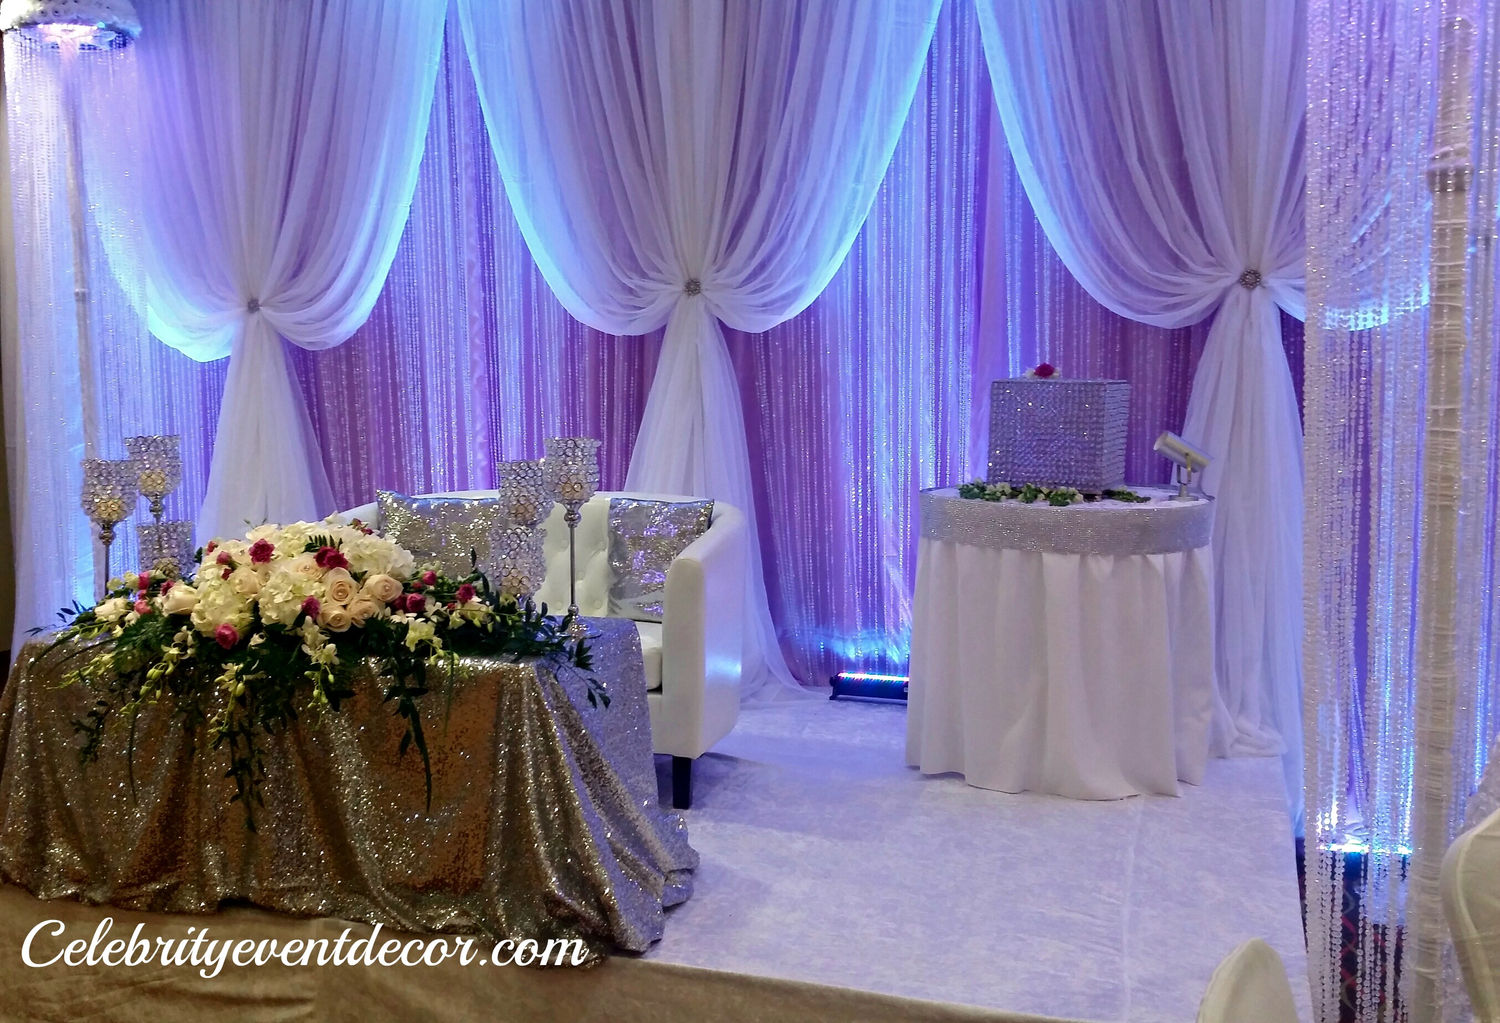 Celebrity Event Decor Banquet Hall Jacksonville Fl Balloon Decorations Event Decorations